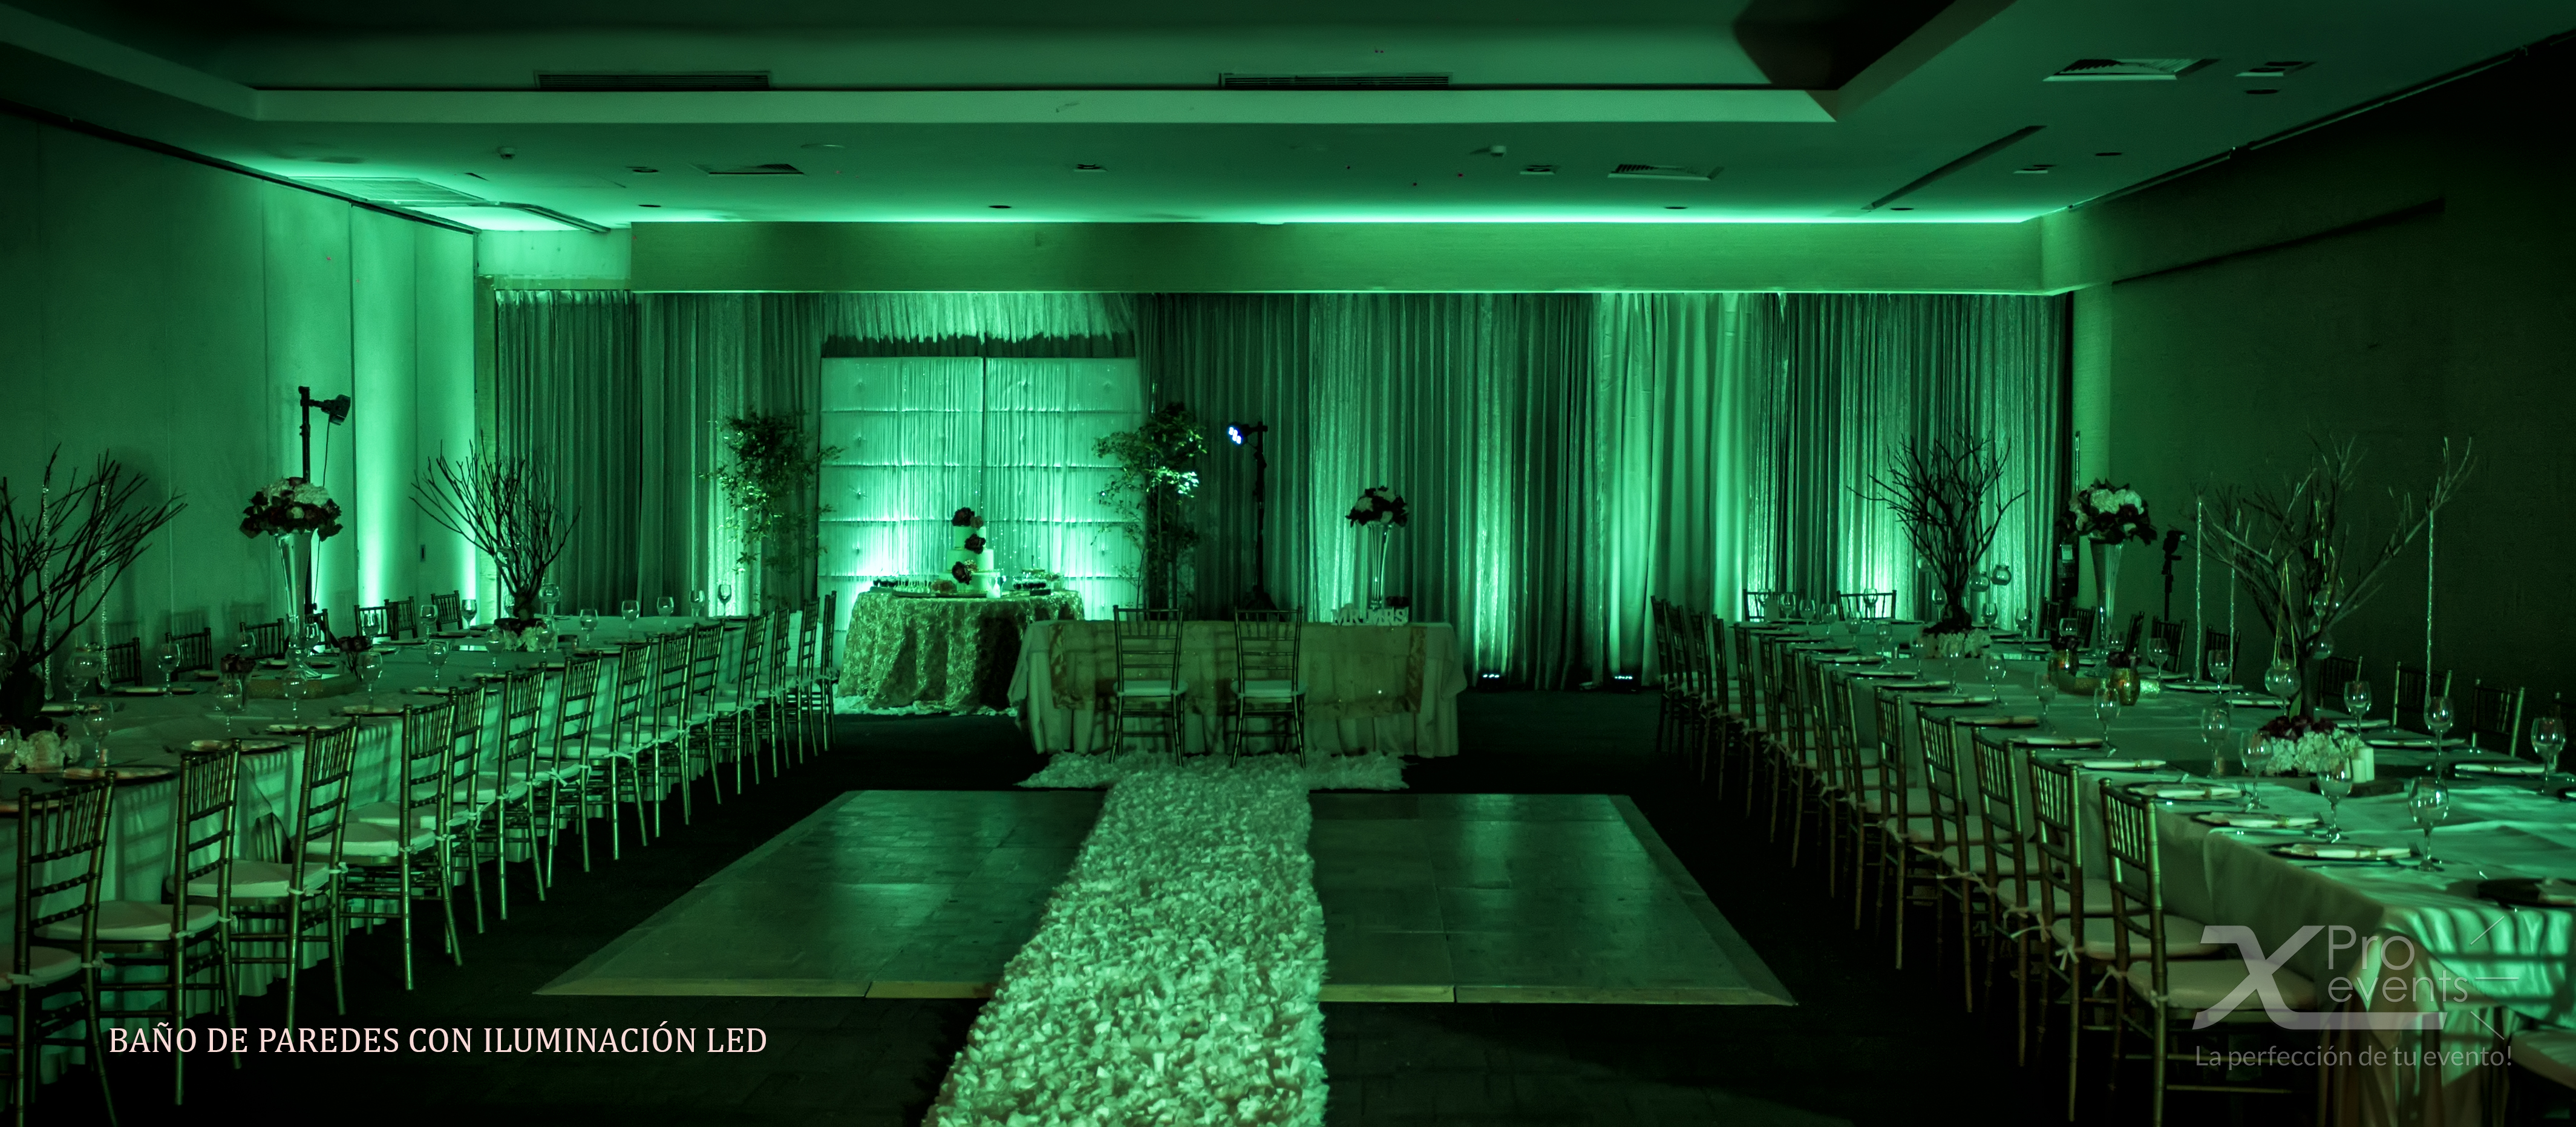 X Pro events - Bano de de salon color verde con iluminacion LED